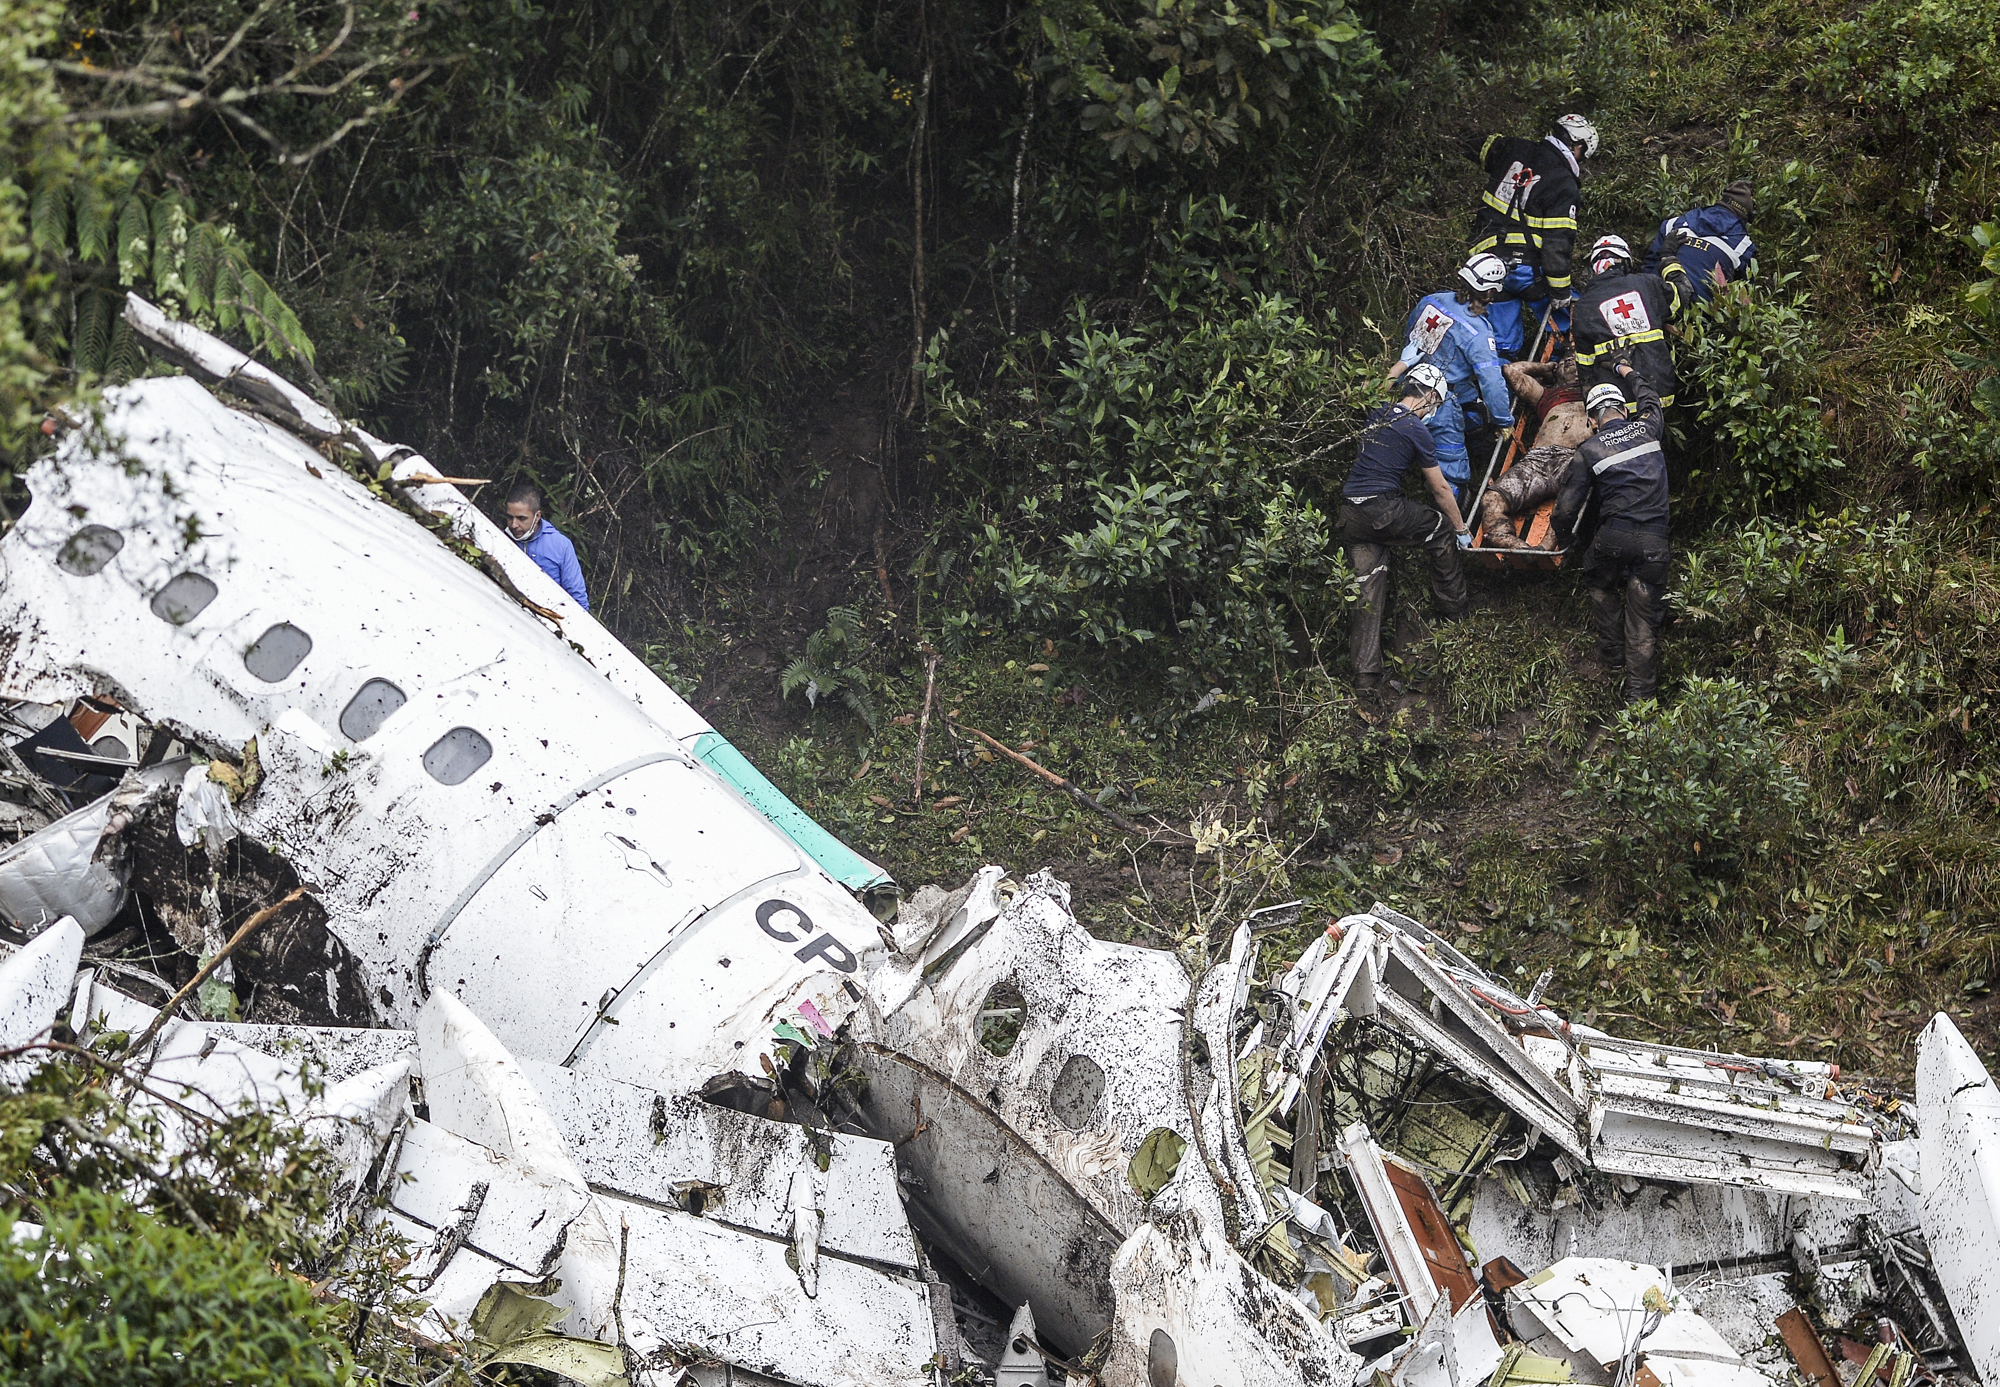 FBL-COLOMBIA-BRAZIL-ACCIDENT-PLANE